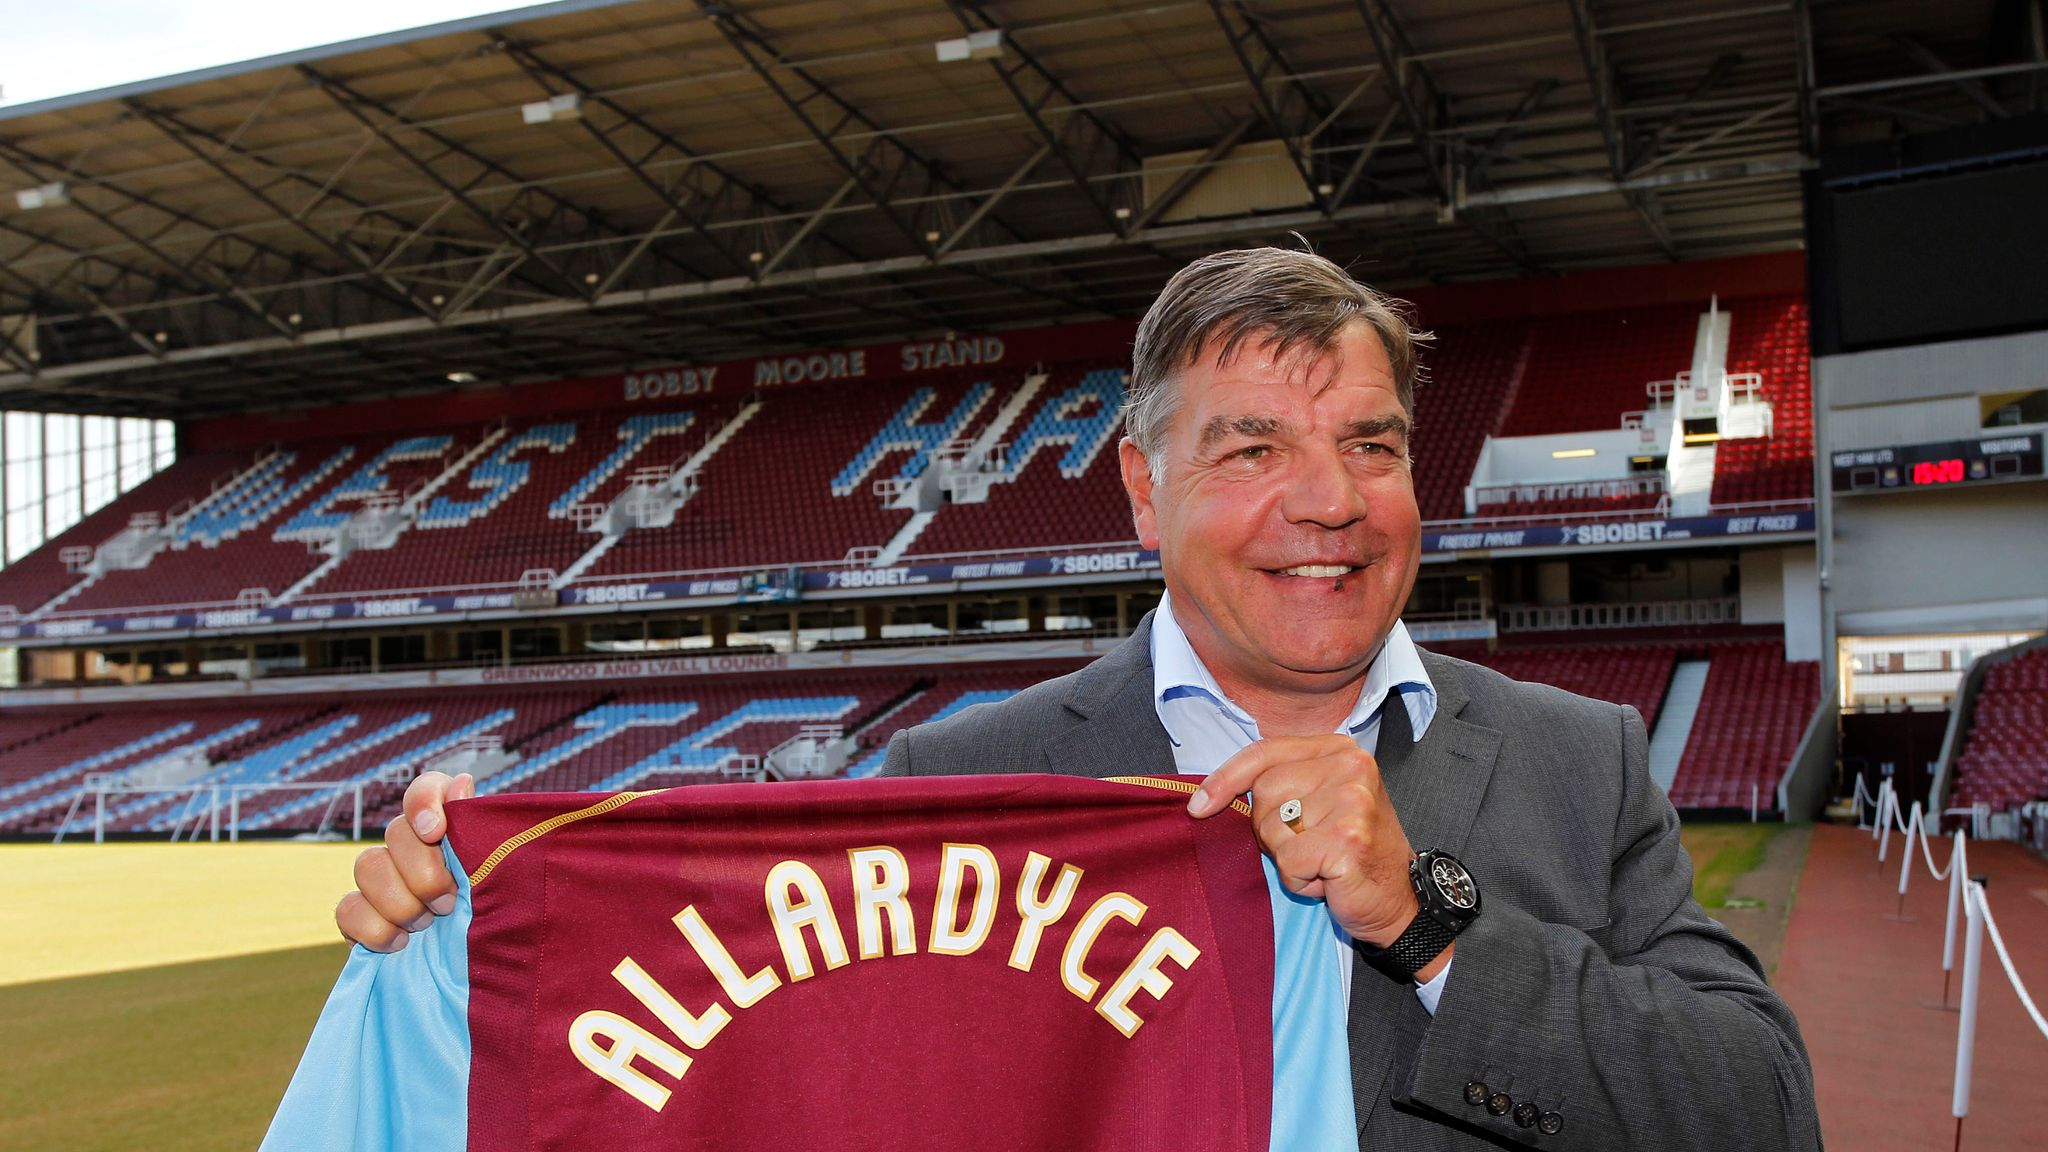 England S Sam Allardyce His Record Career In Numbers And In Tray